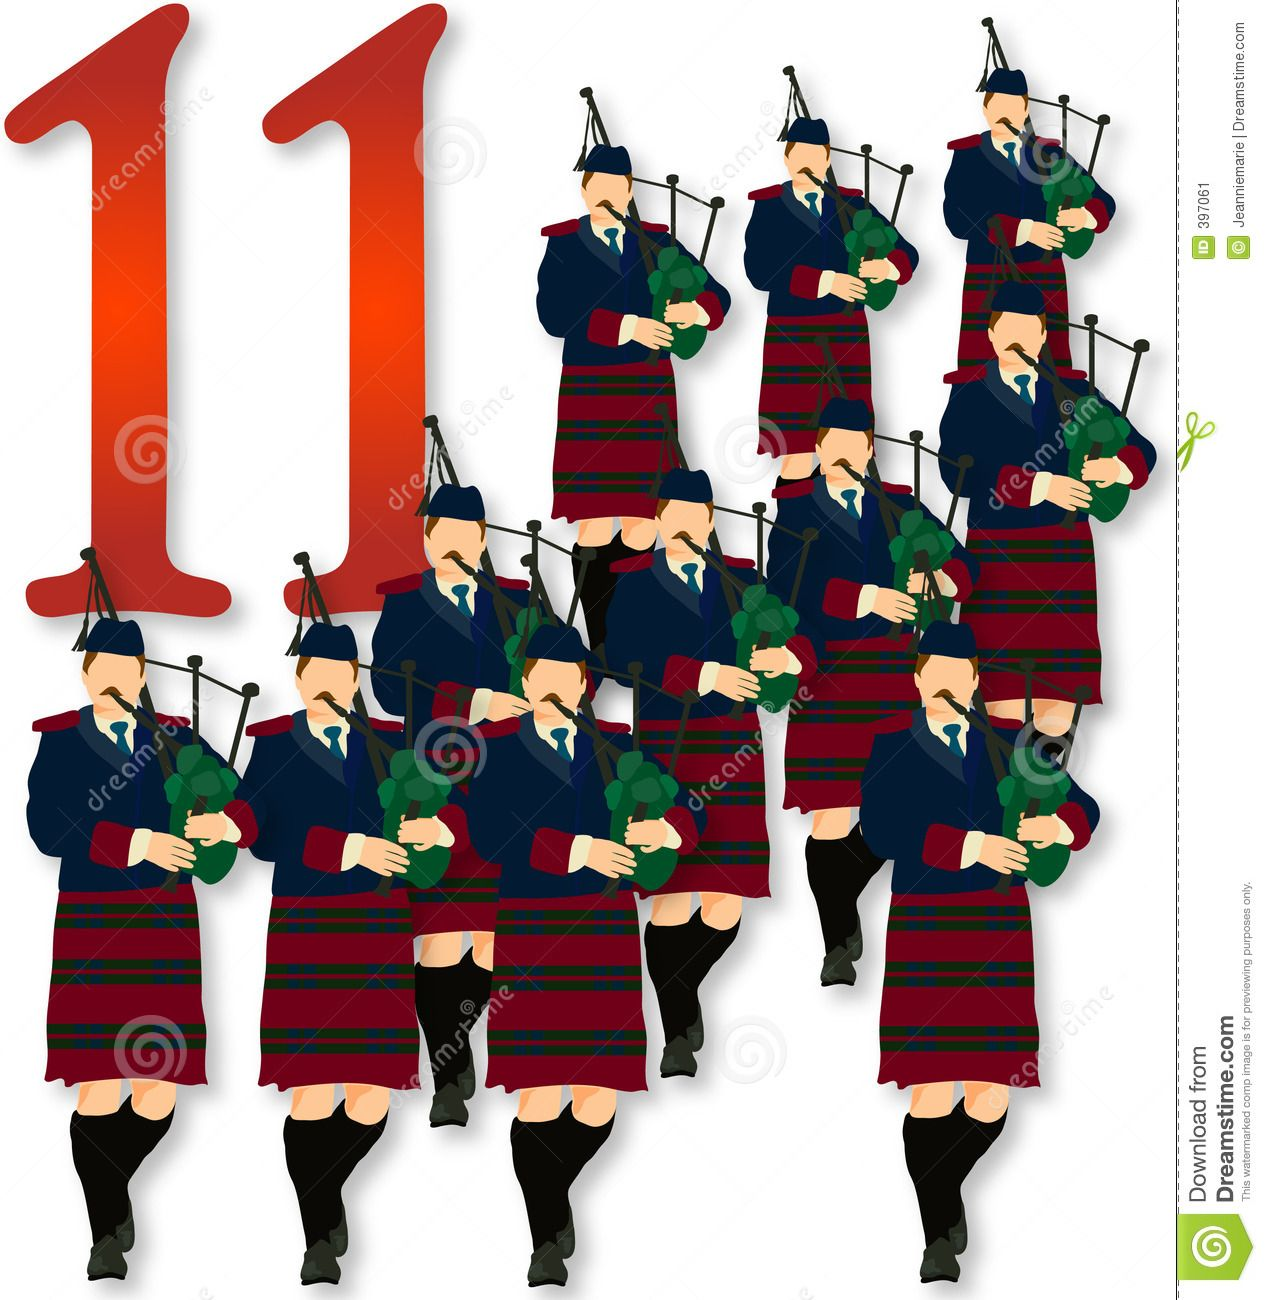 11 pipers piping images 12 days christmas 11 pipers piping 397061 jpg 1266 215 1300 5621